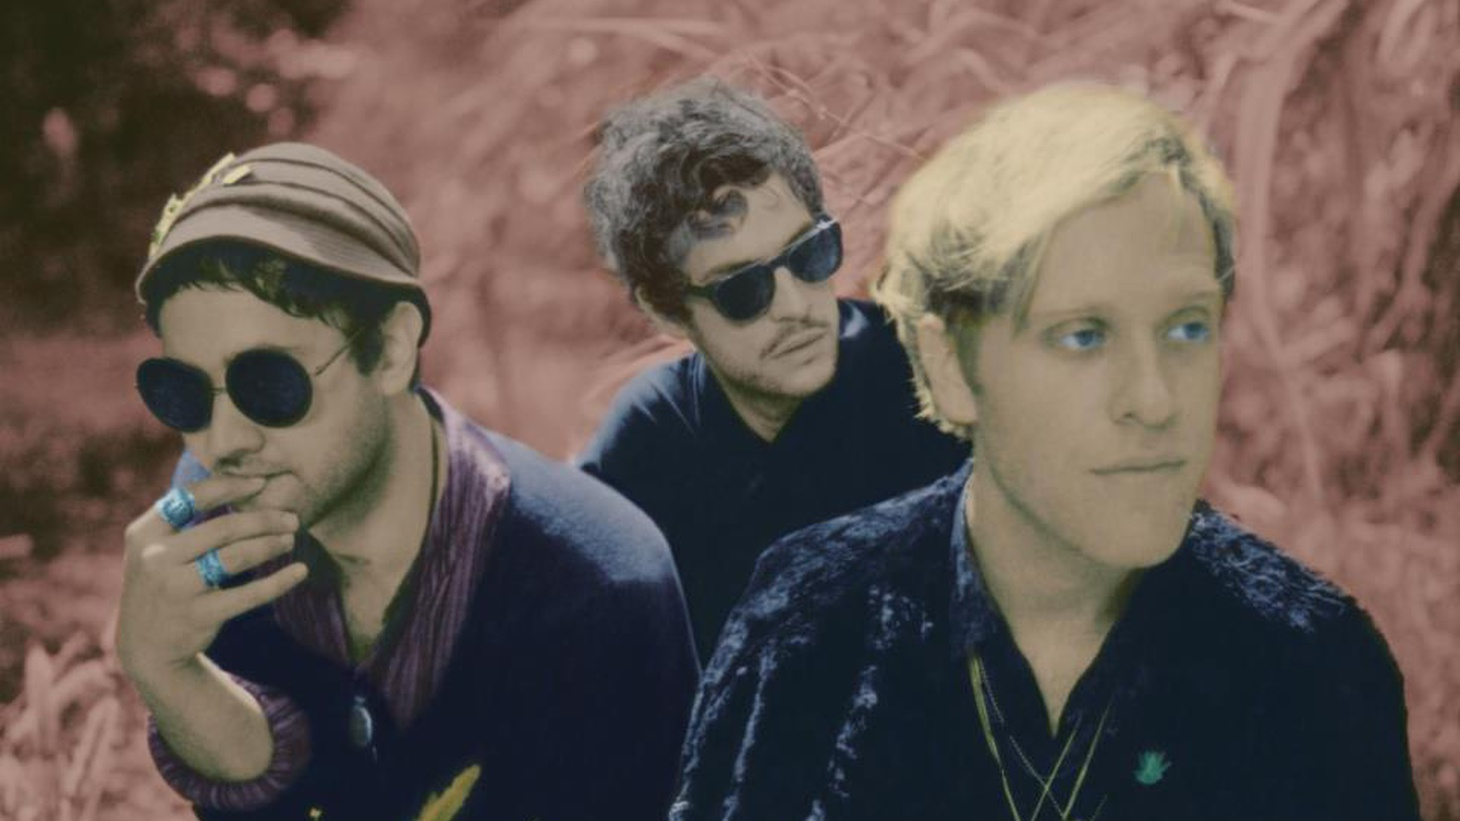 Portland band Unknown Mortal Orchestra harness their wildly creative impulses into a soulful mix.